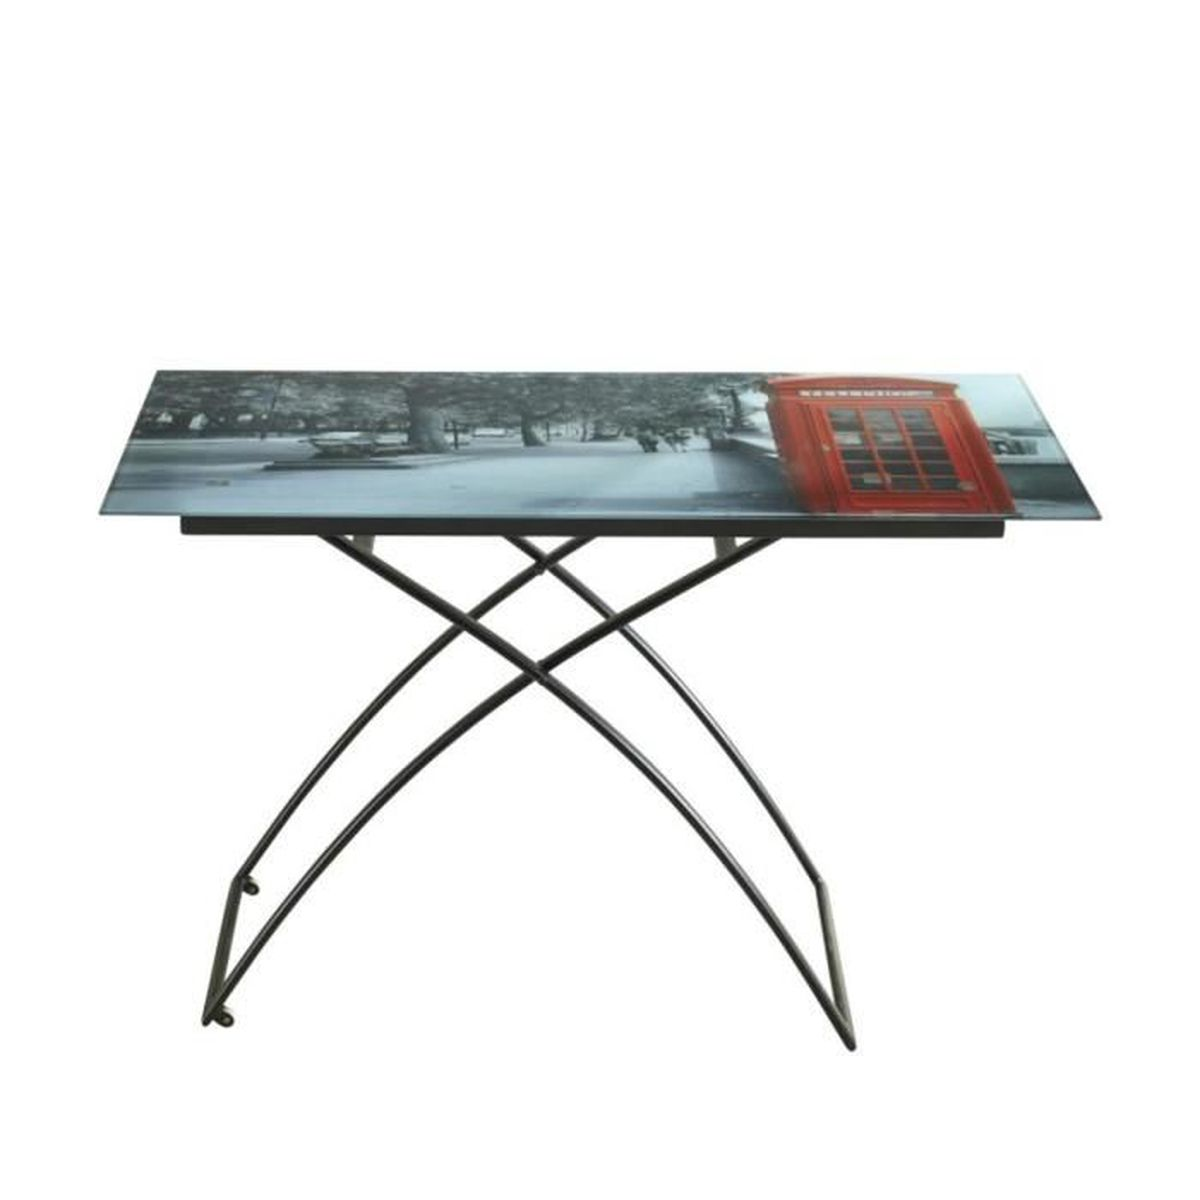 Table de sejour table basse london en m tal verre noir - Table de sejour en verre ...